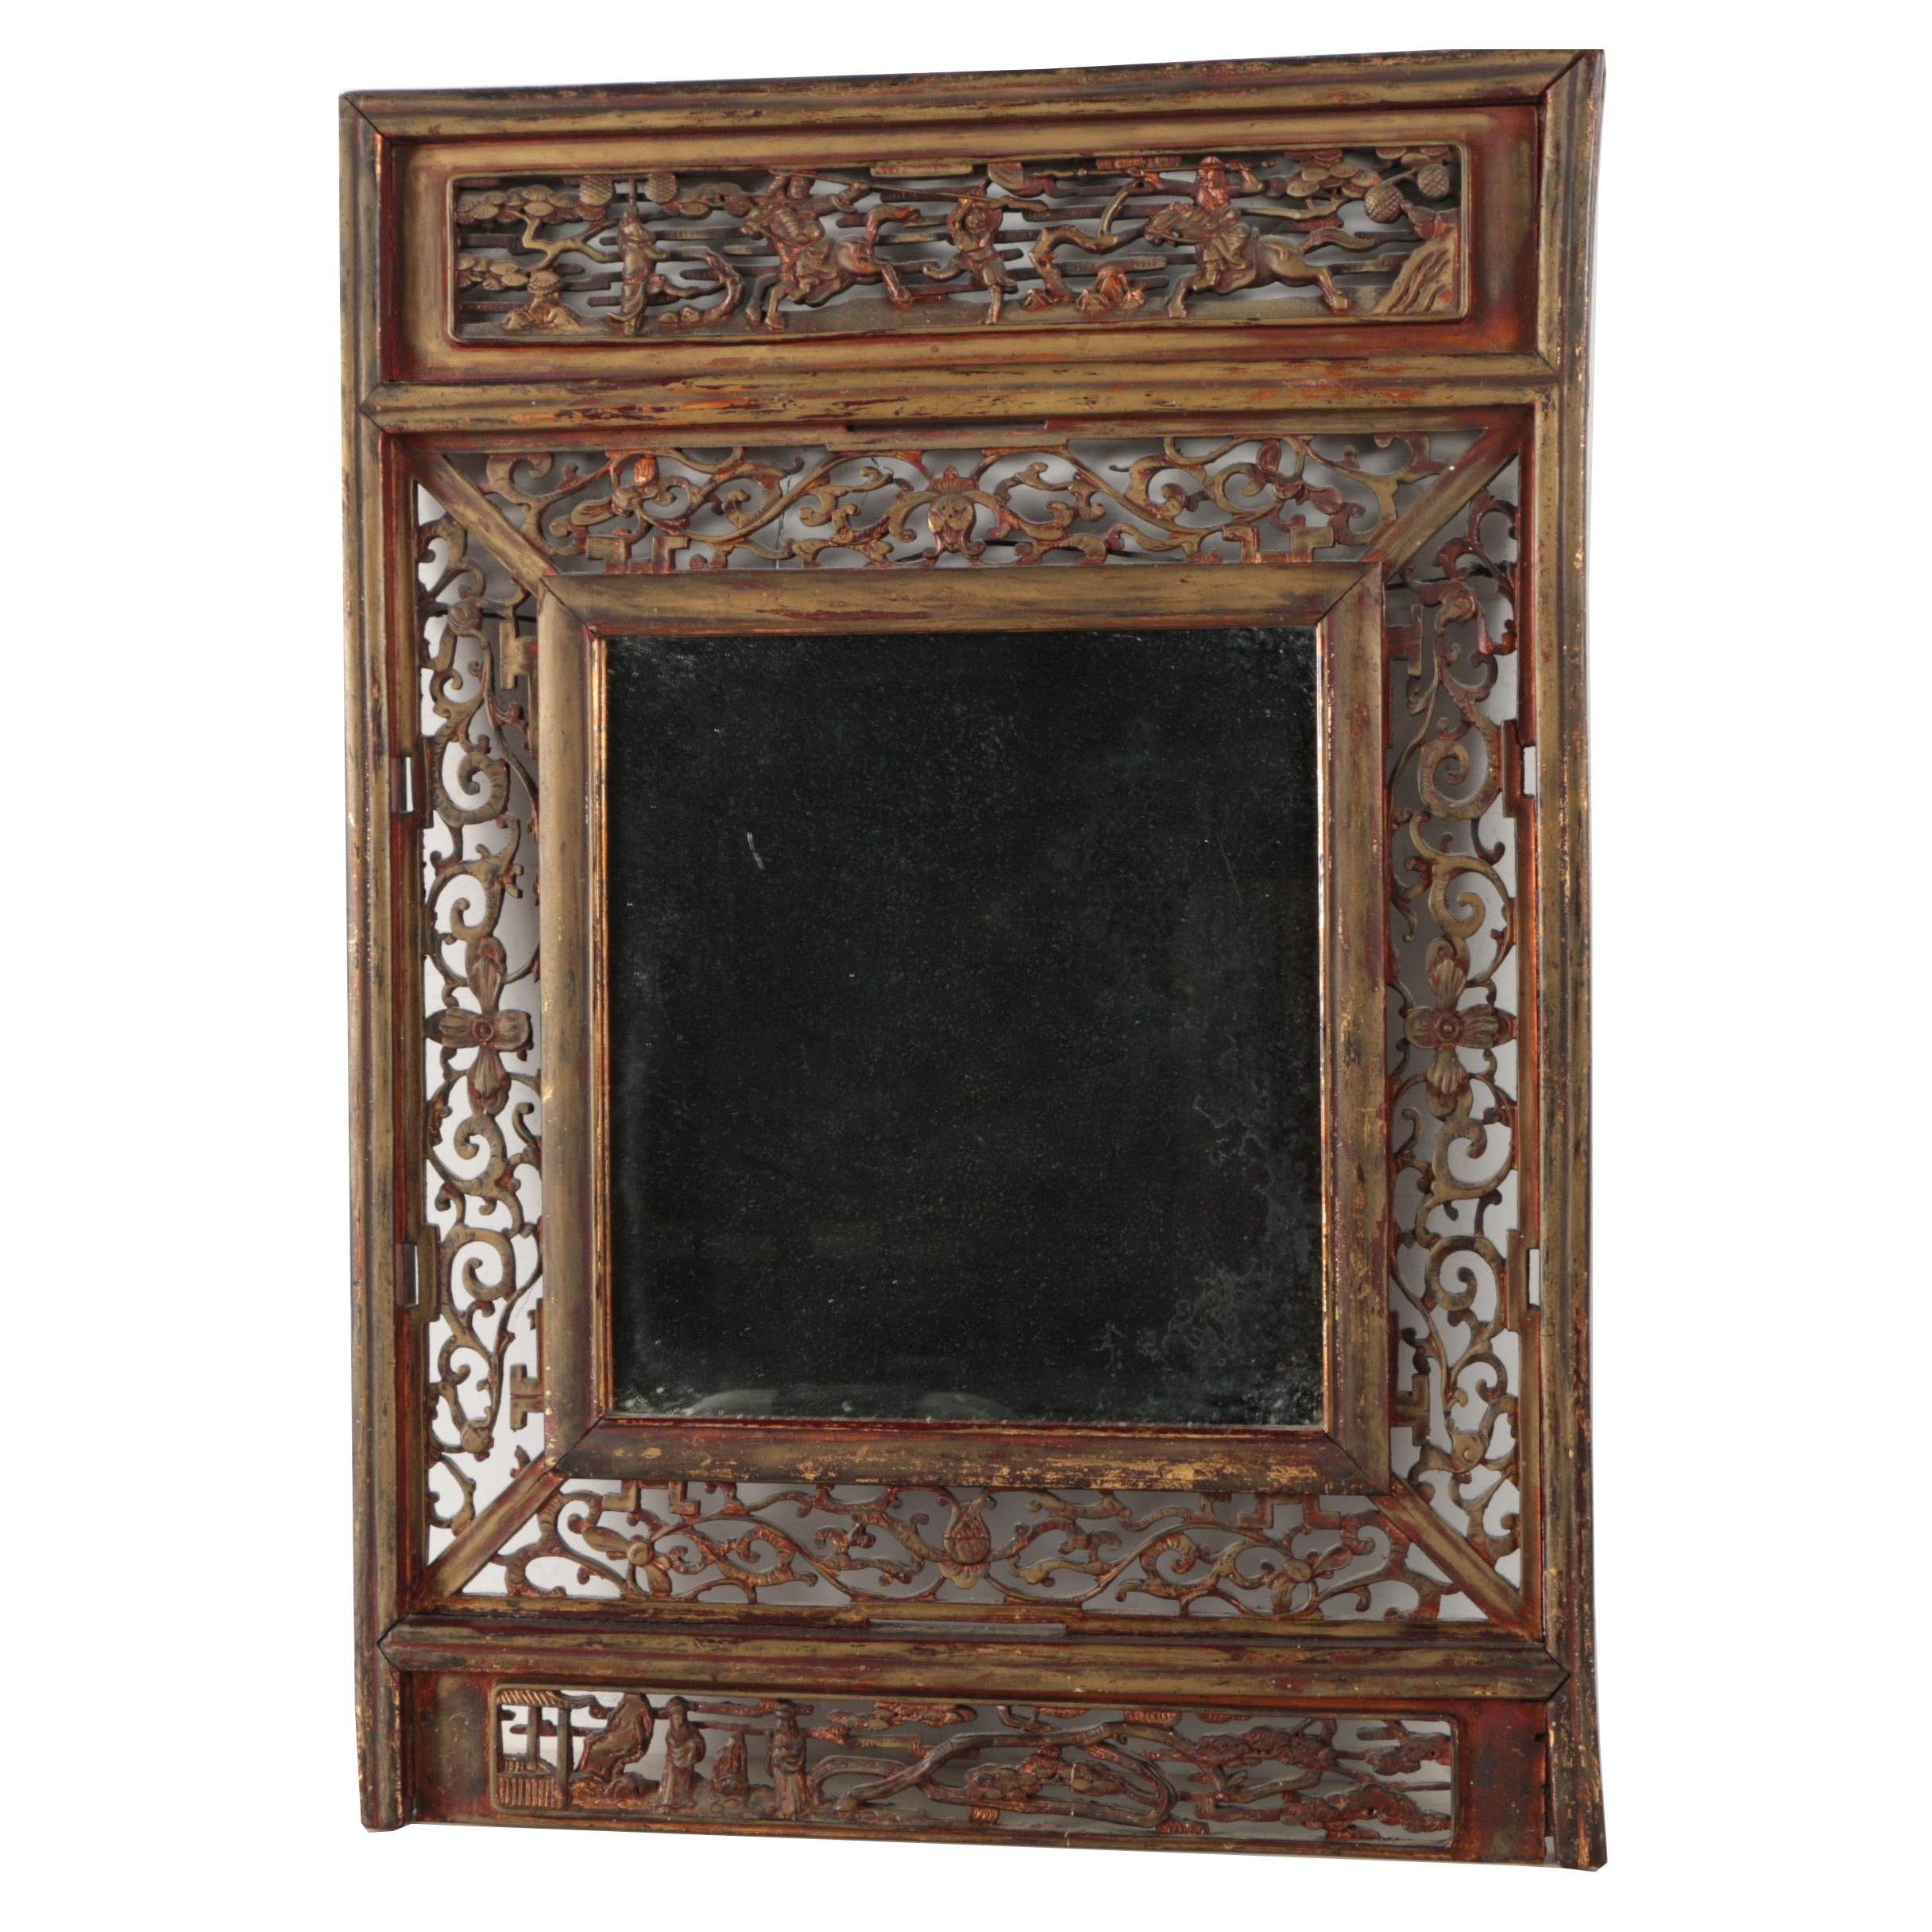 East Asian Style Carved Framed Mirror